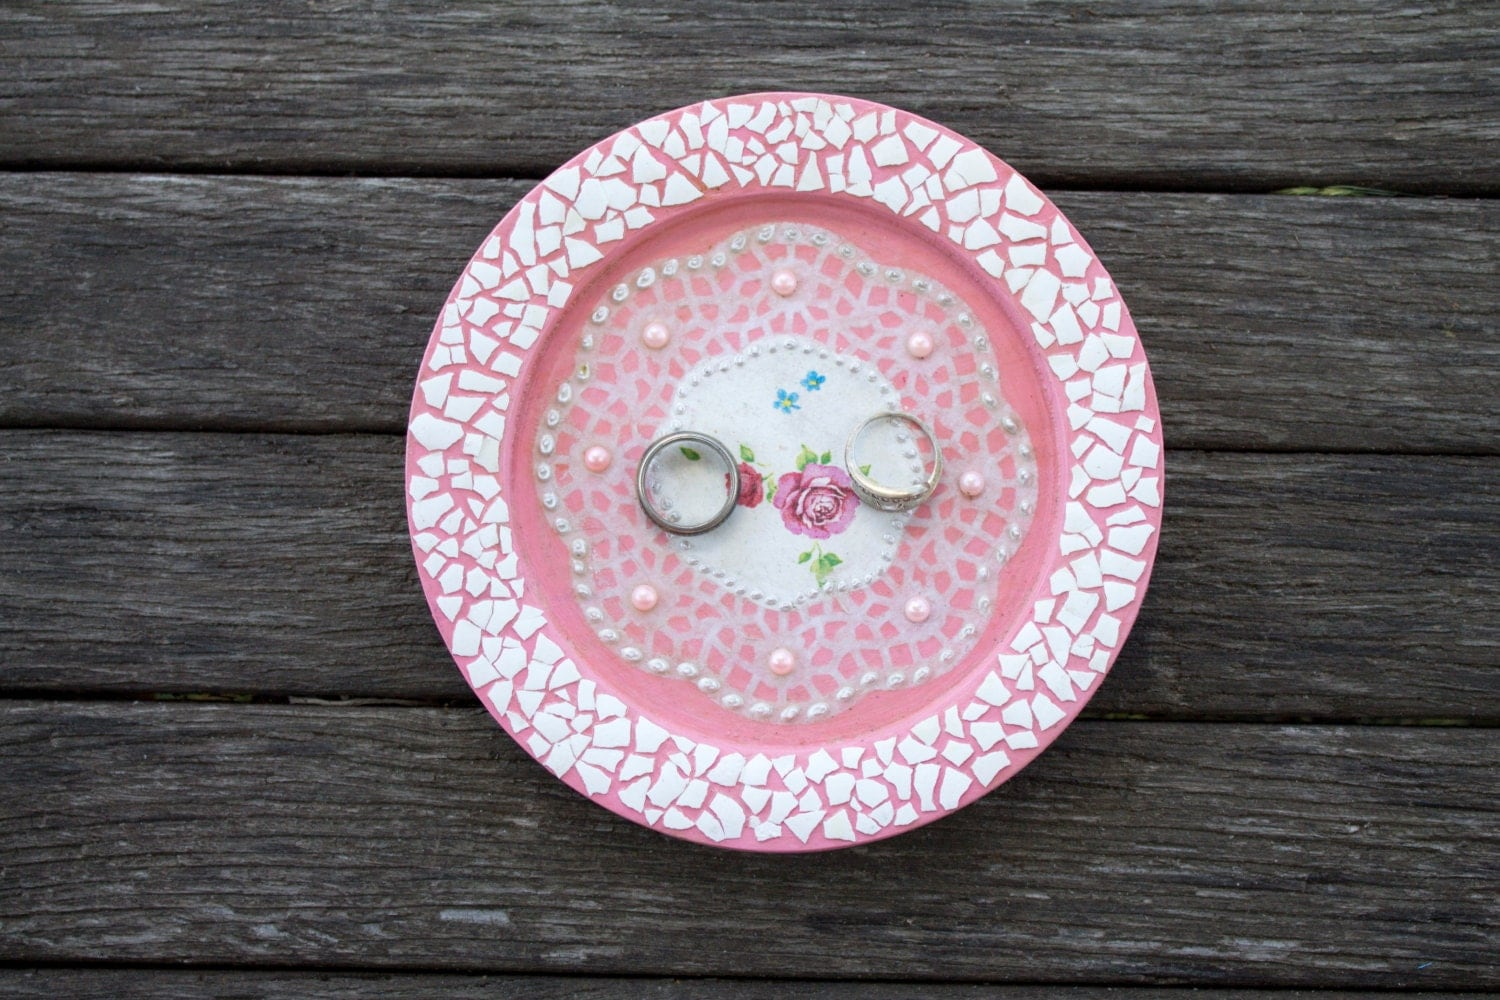 Engagement ring dish shabby chic Wedding ring dish pink roses ...